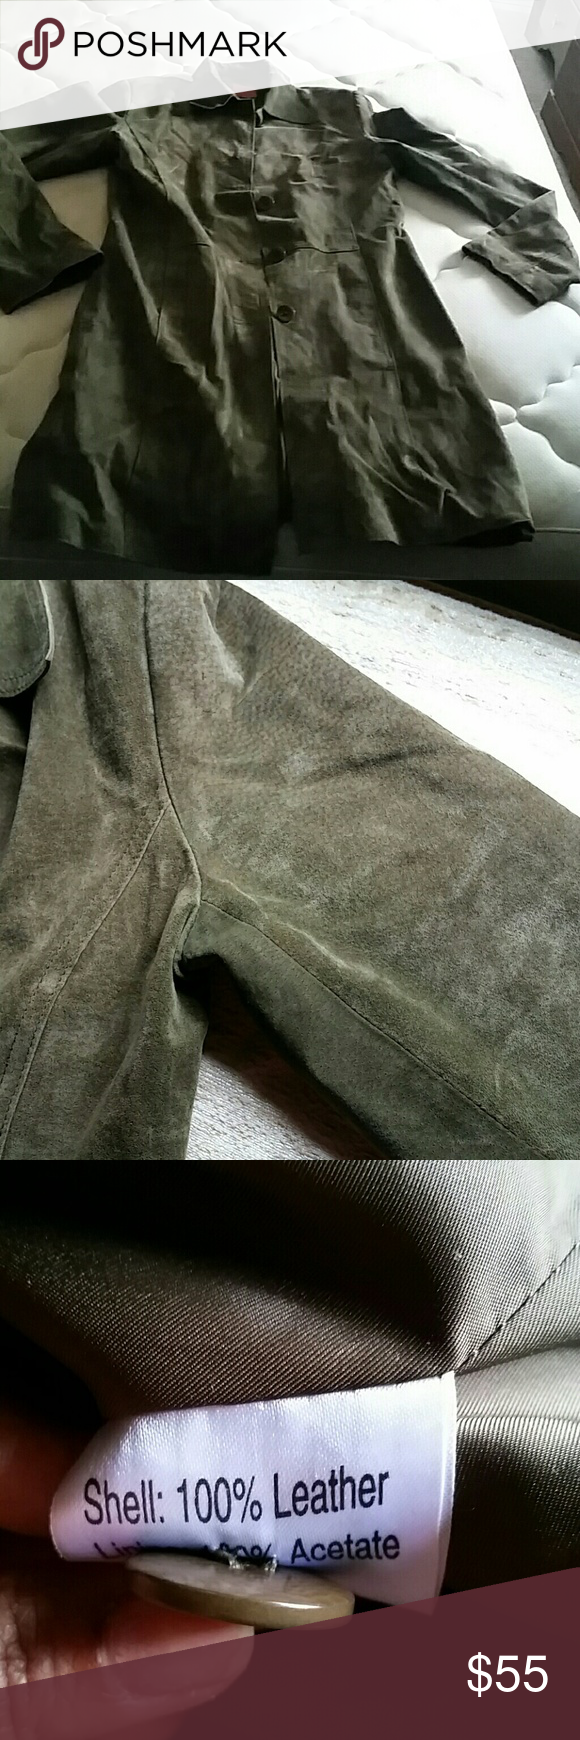 Vintage leather  trench coat You can tell its used because of ages but Still  in good condition . Jackets & Coats Trench Coats